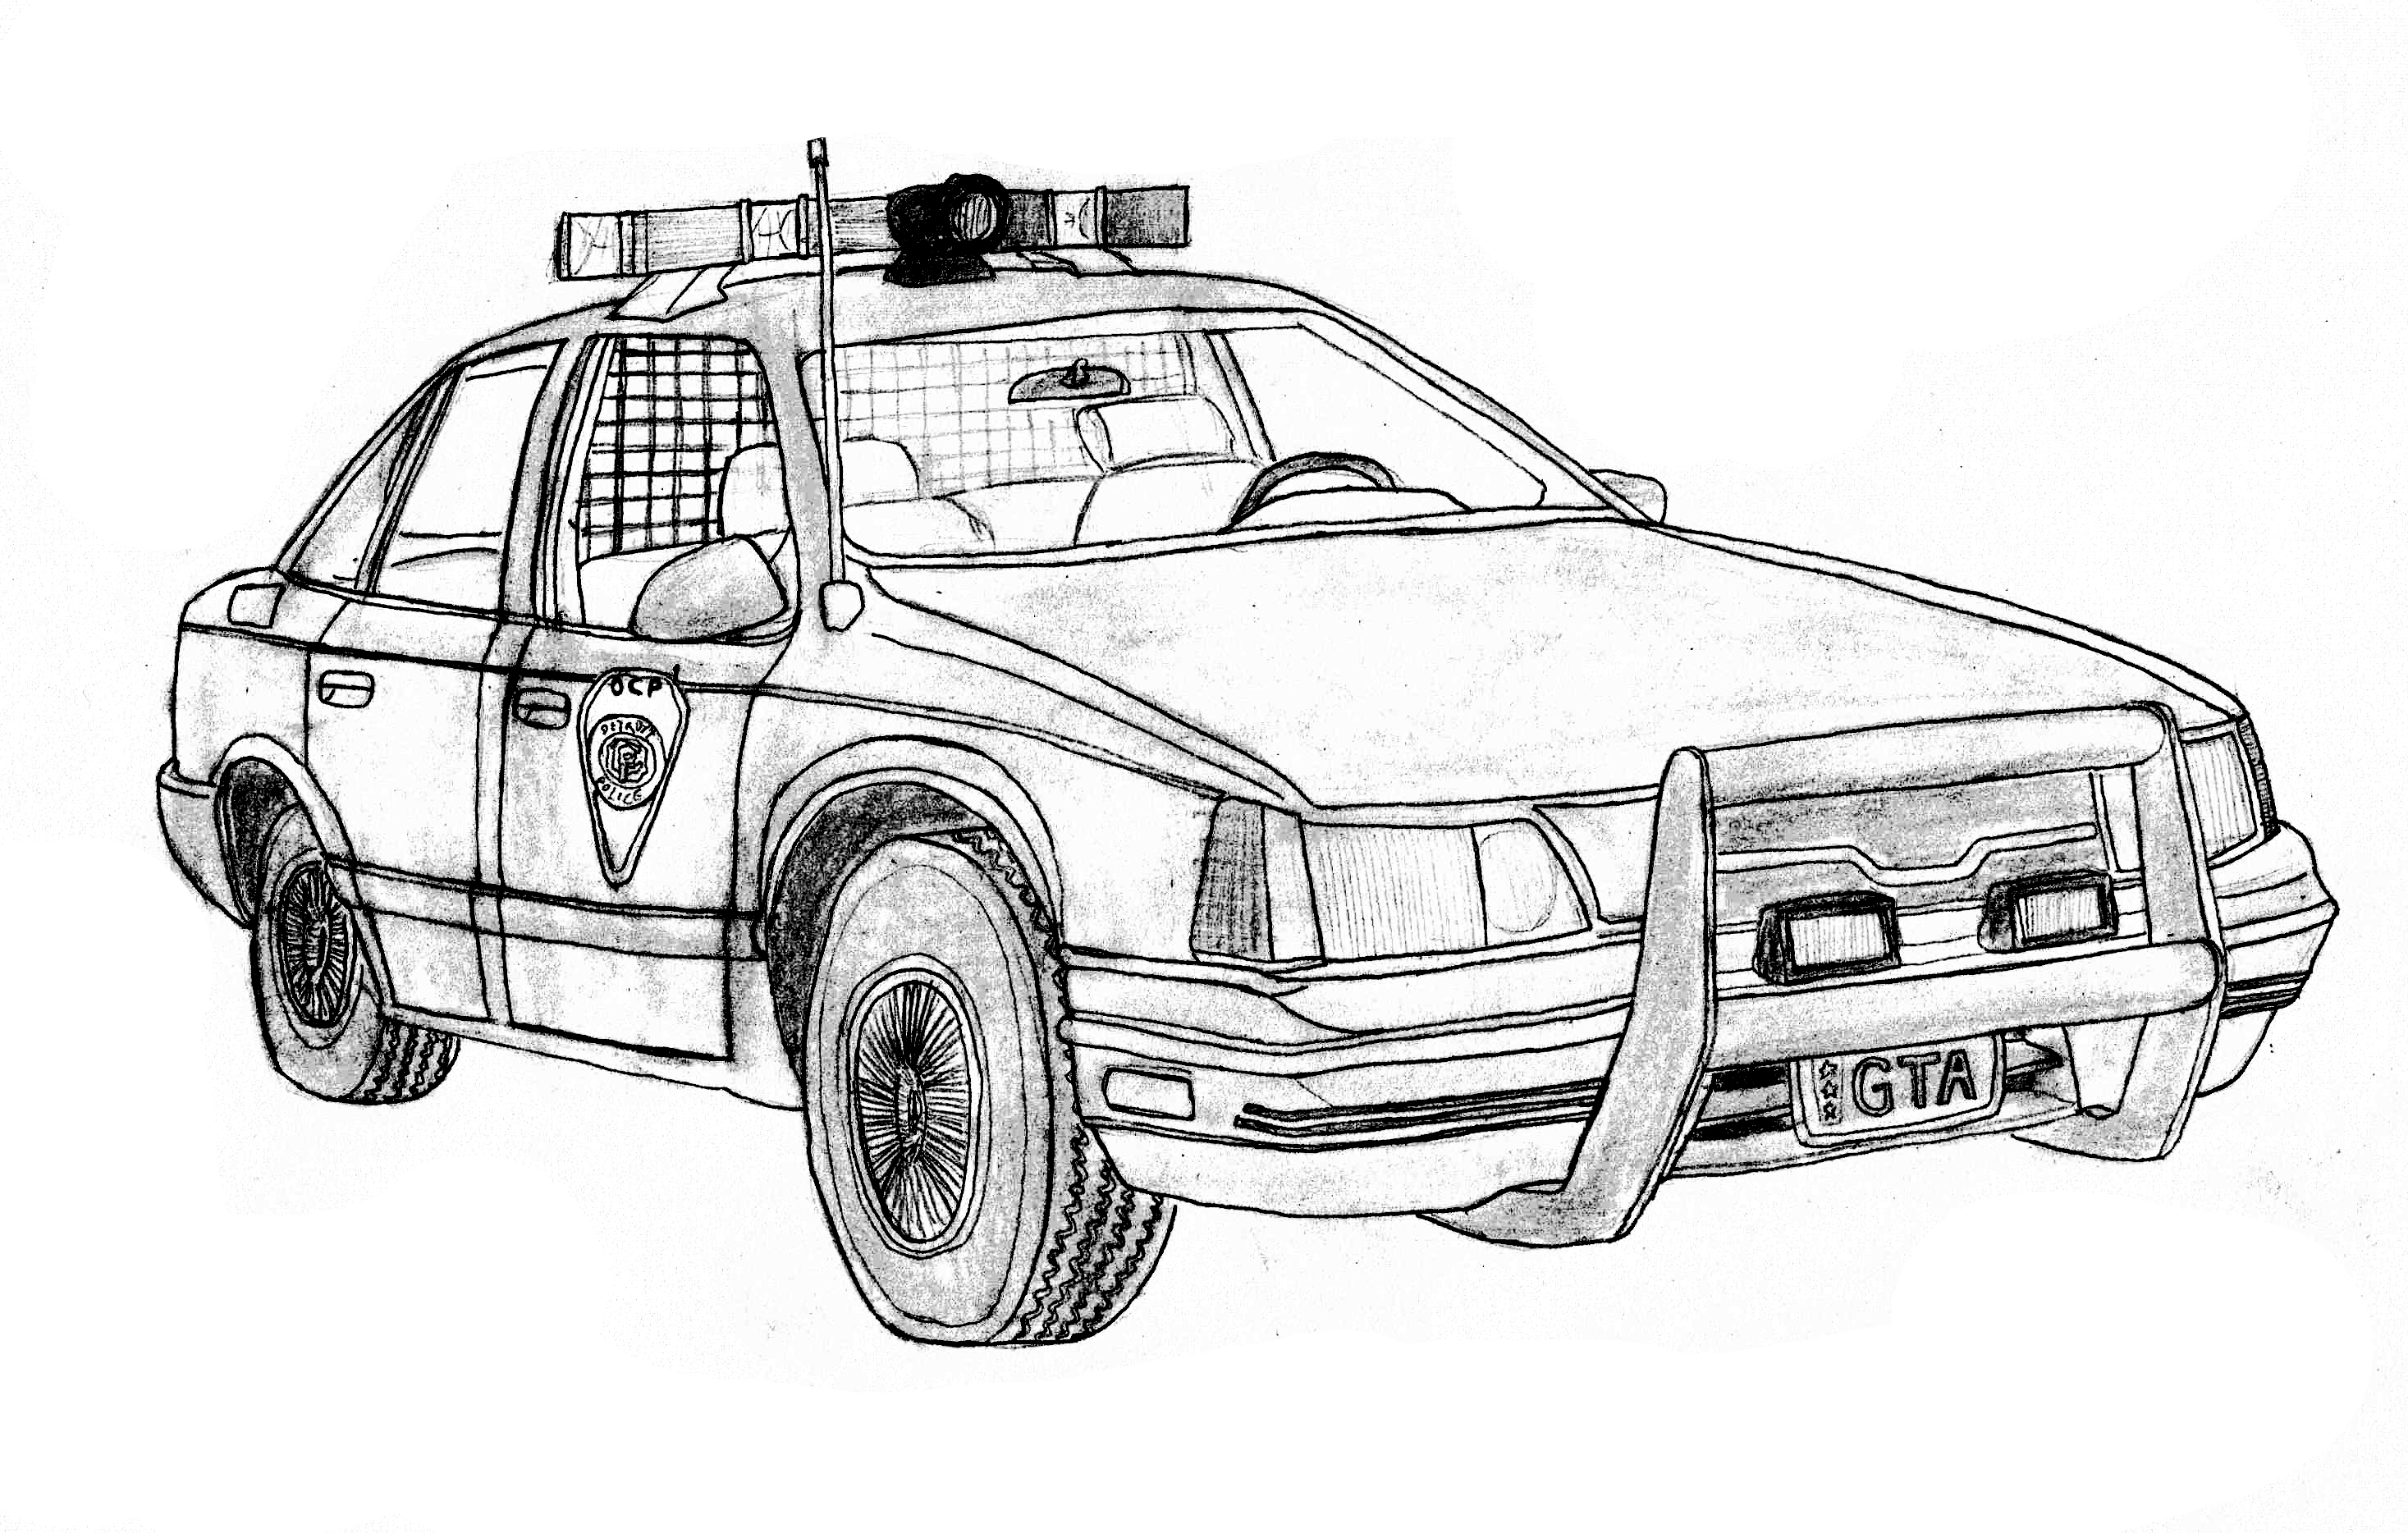 robocop ford taurus police car by dandelo1 police car coloring pages